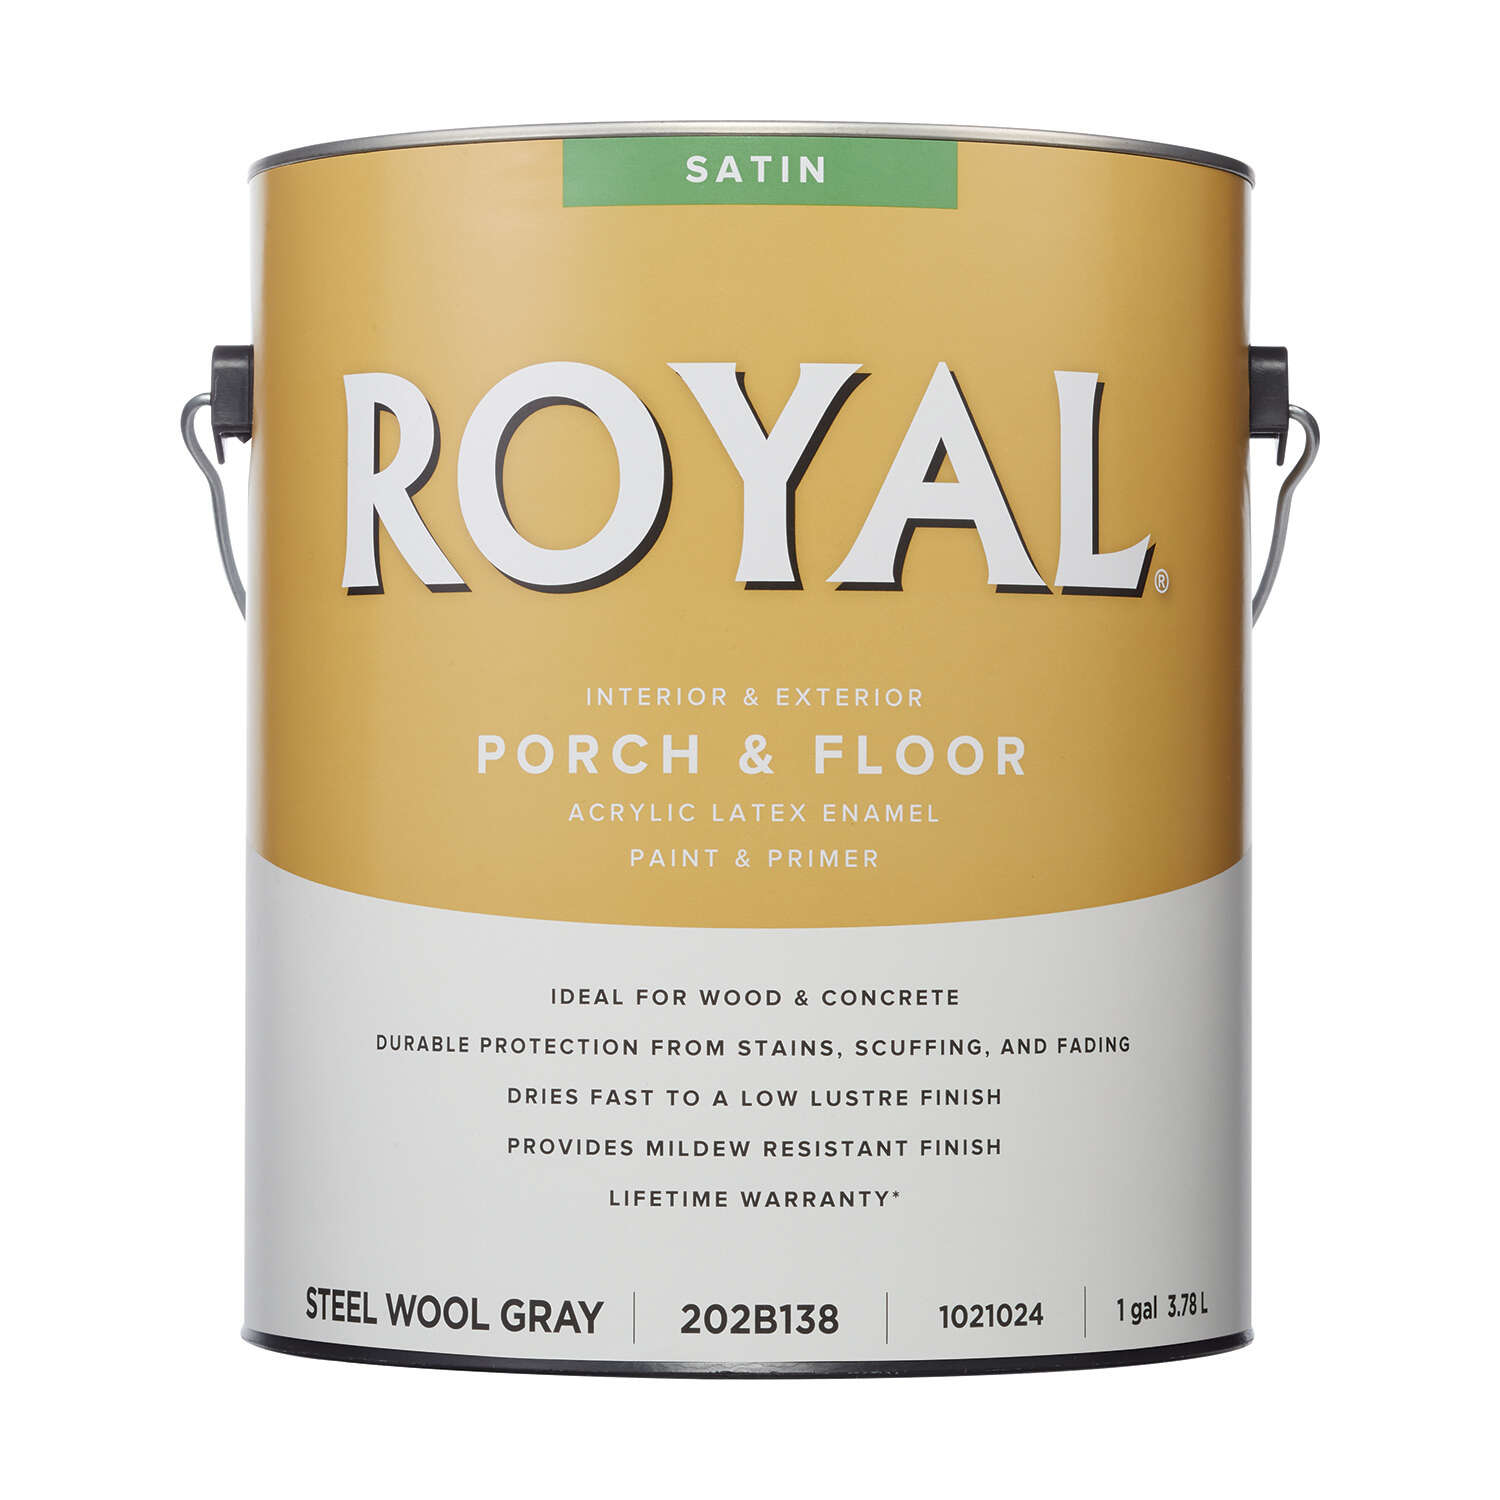 Royal Satin Steel Wool Gray Porch & Floor Paint 1 gal.